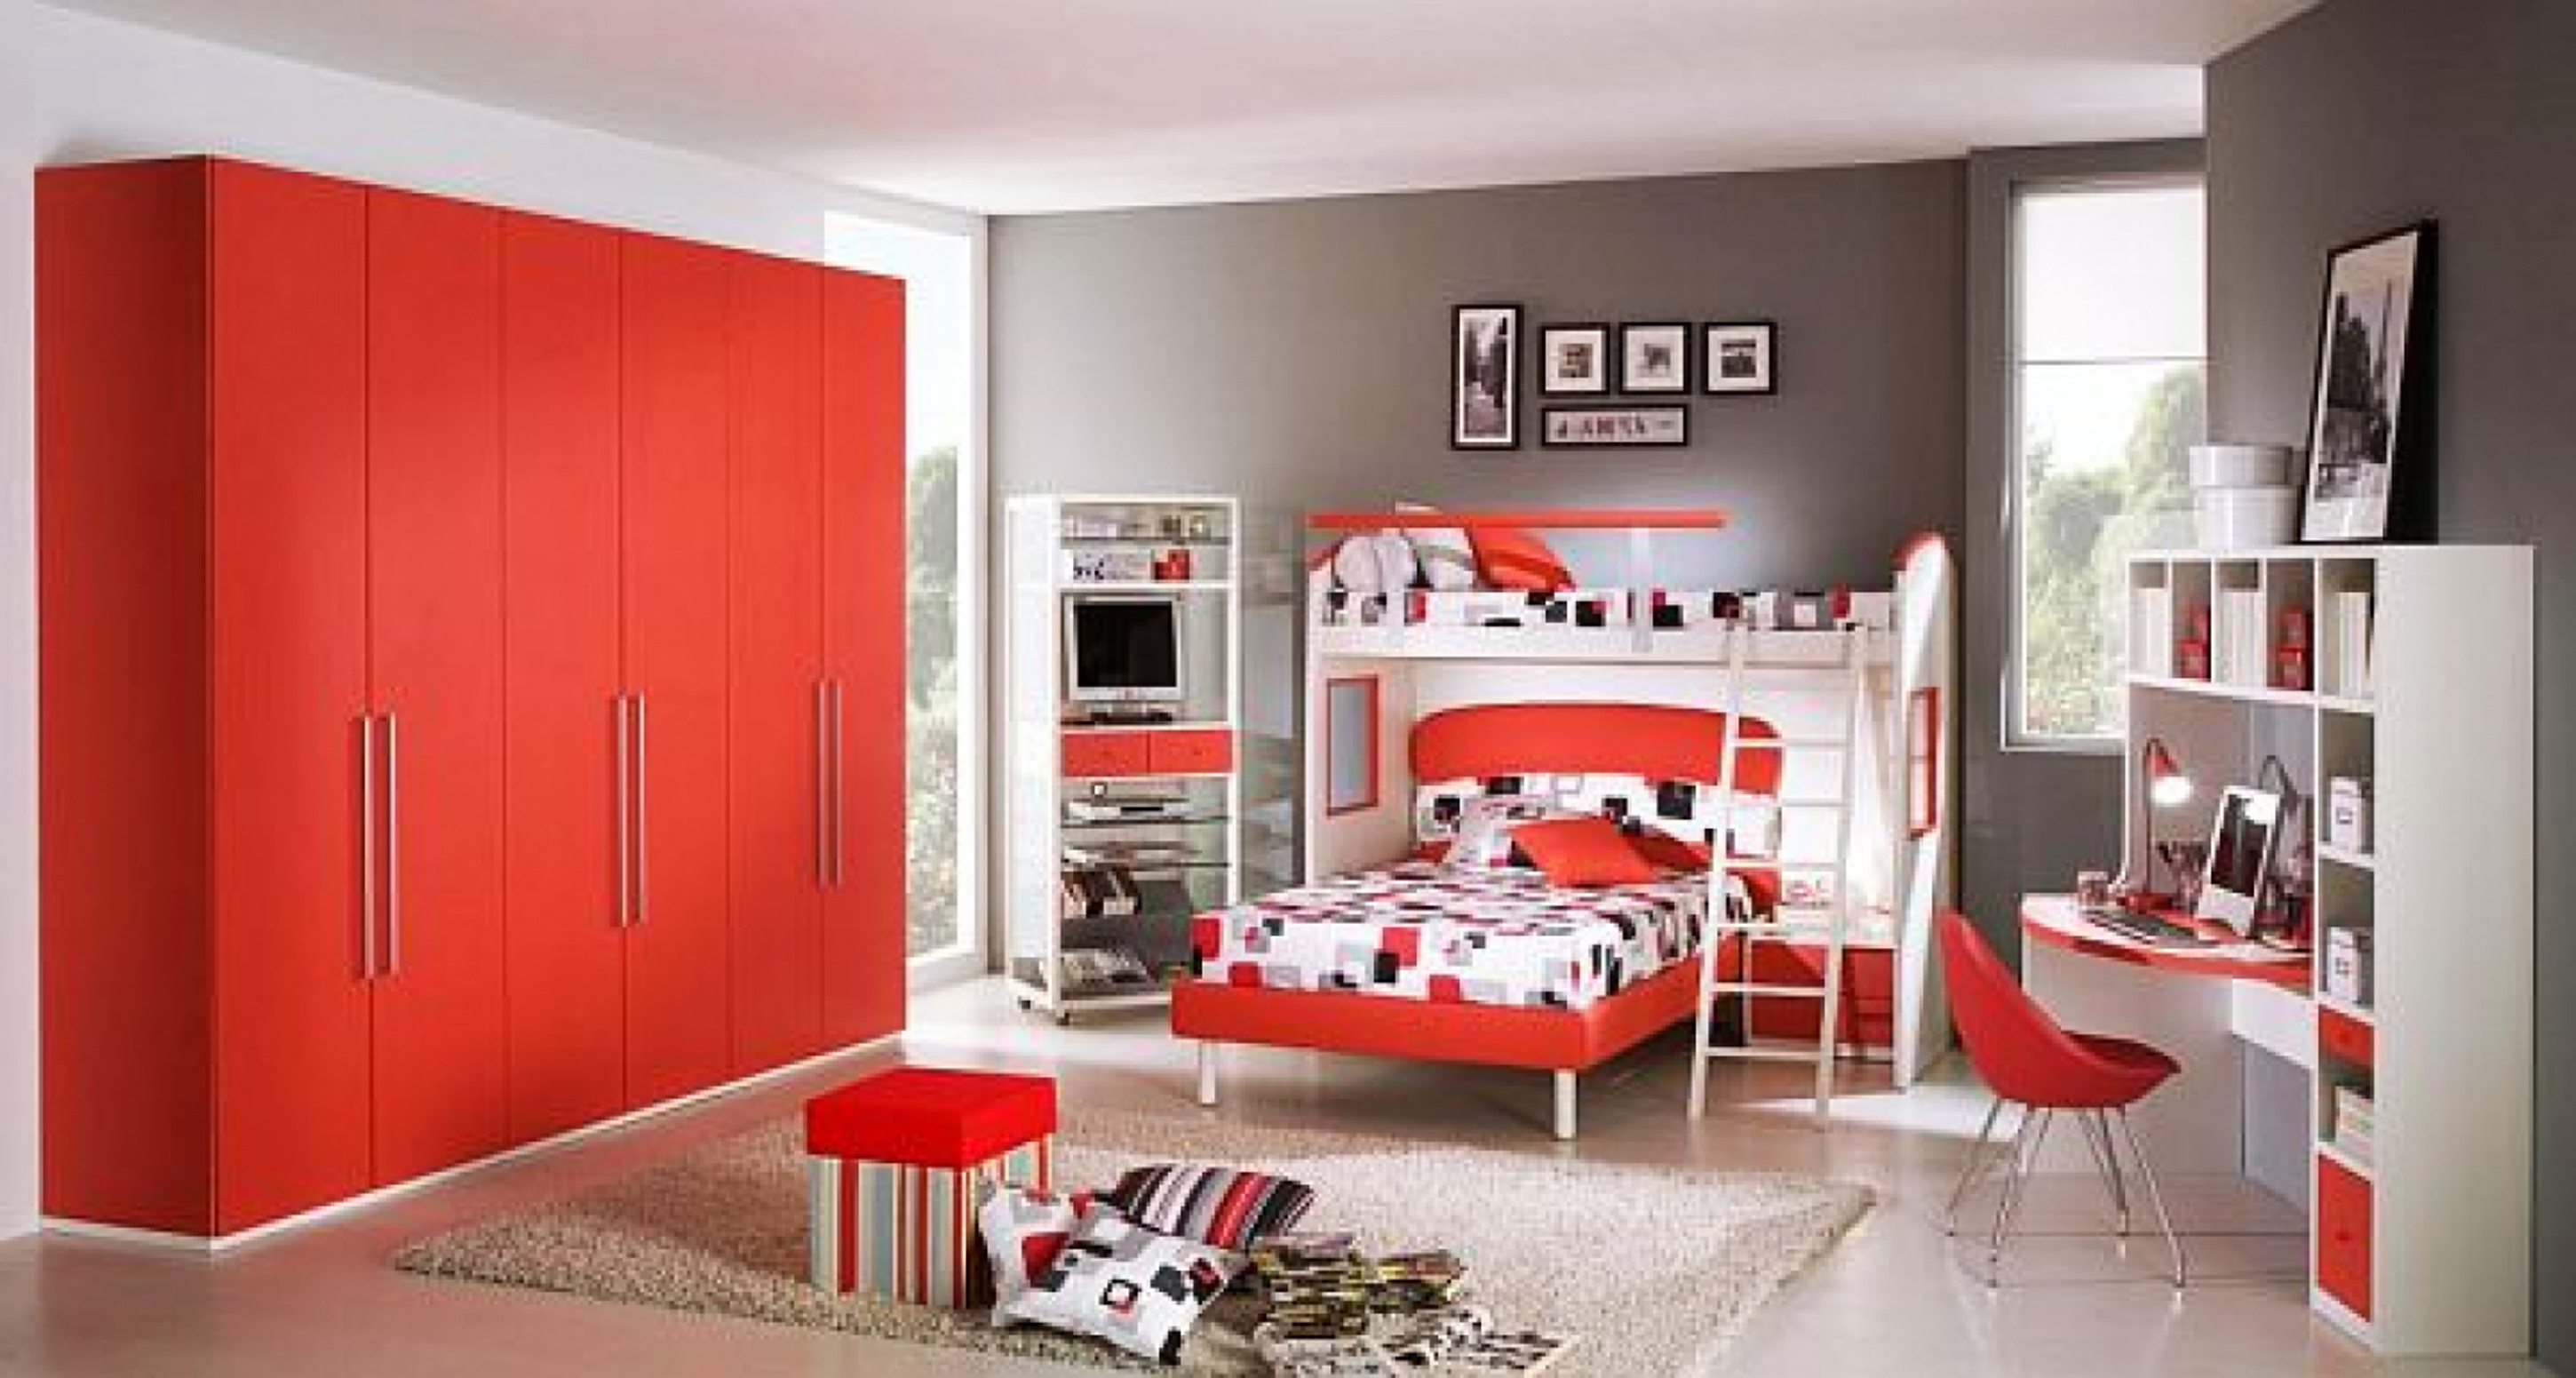 Kids Bedroom Awesome Boys Bedroom Decoration Idea With Red Wardrone Red White Bunk Bed And Gray Wall Impressive Boys Bedroom Decoration Ideas (View 20 of 28)